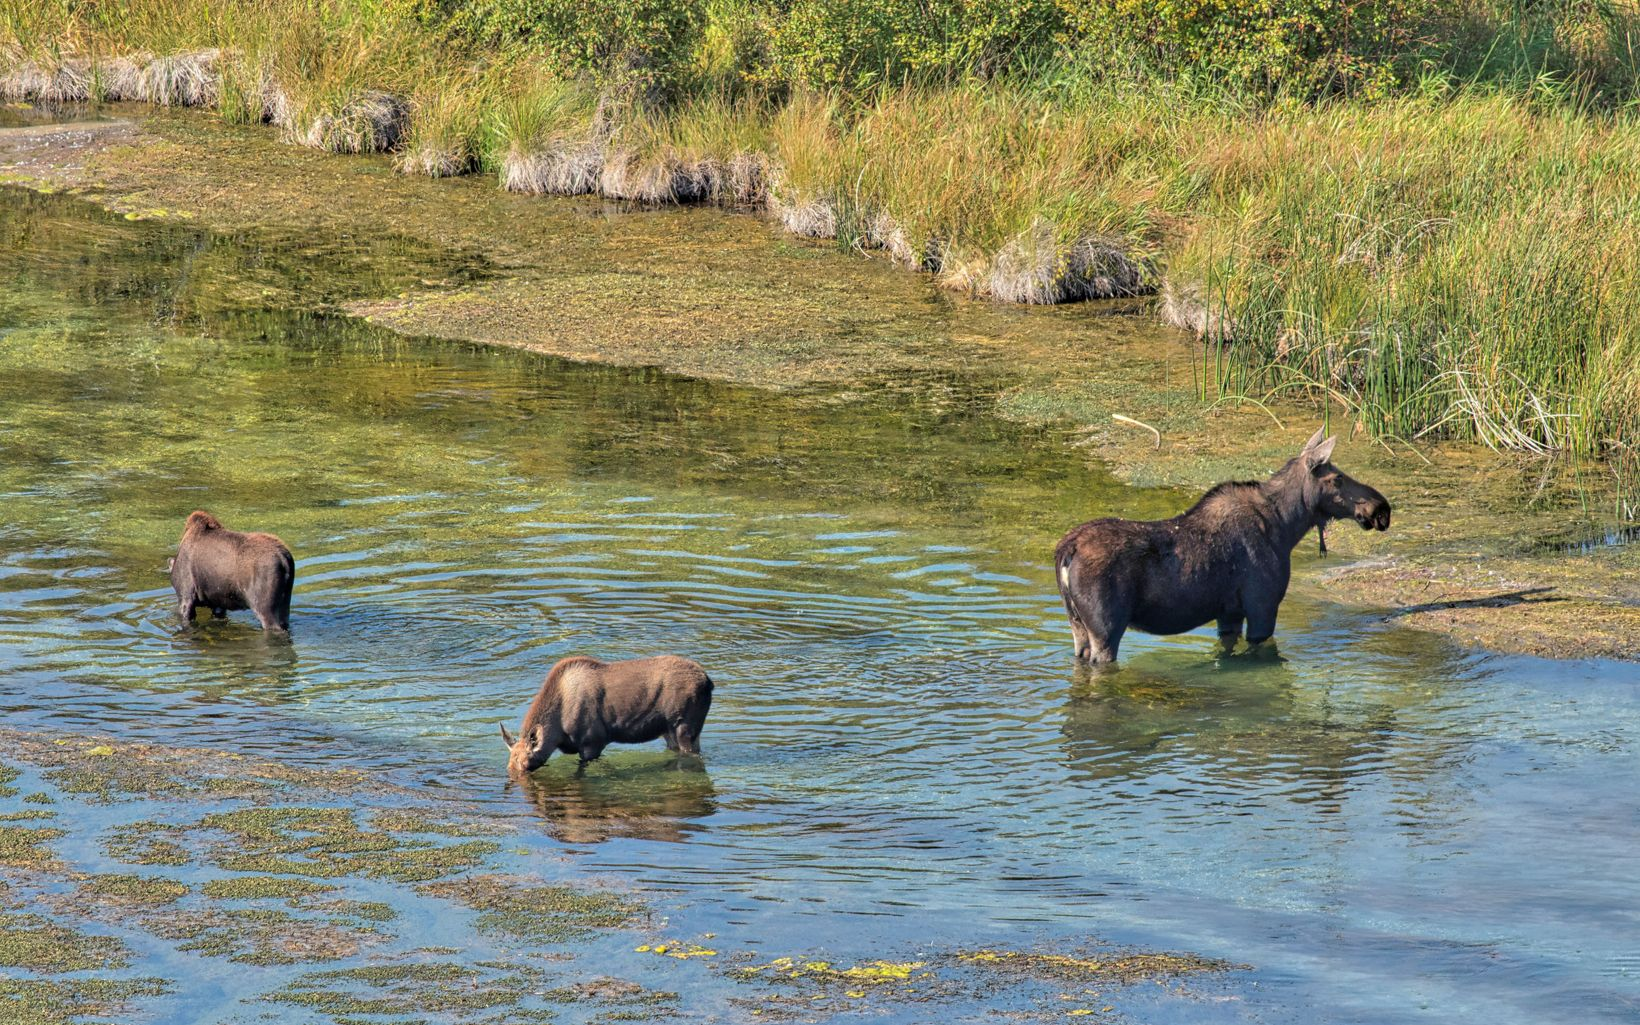 One large and two smaller moose stand and feed in the creek.